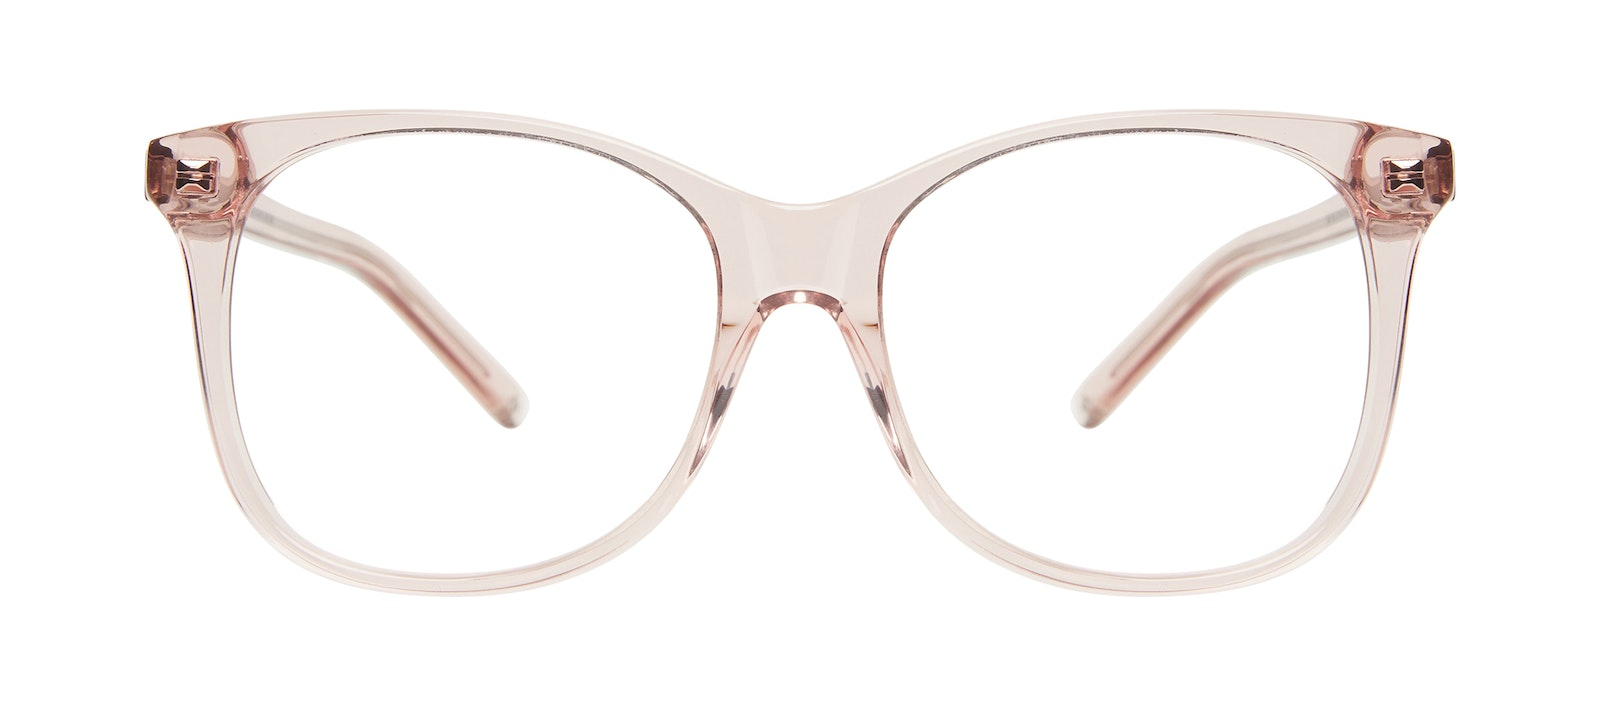 Affordable Fashion Glasses Square Eyeglasses Women Bloom Pink Front